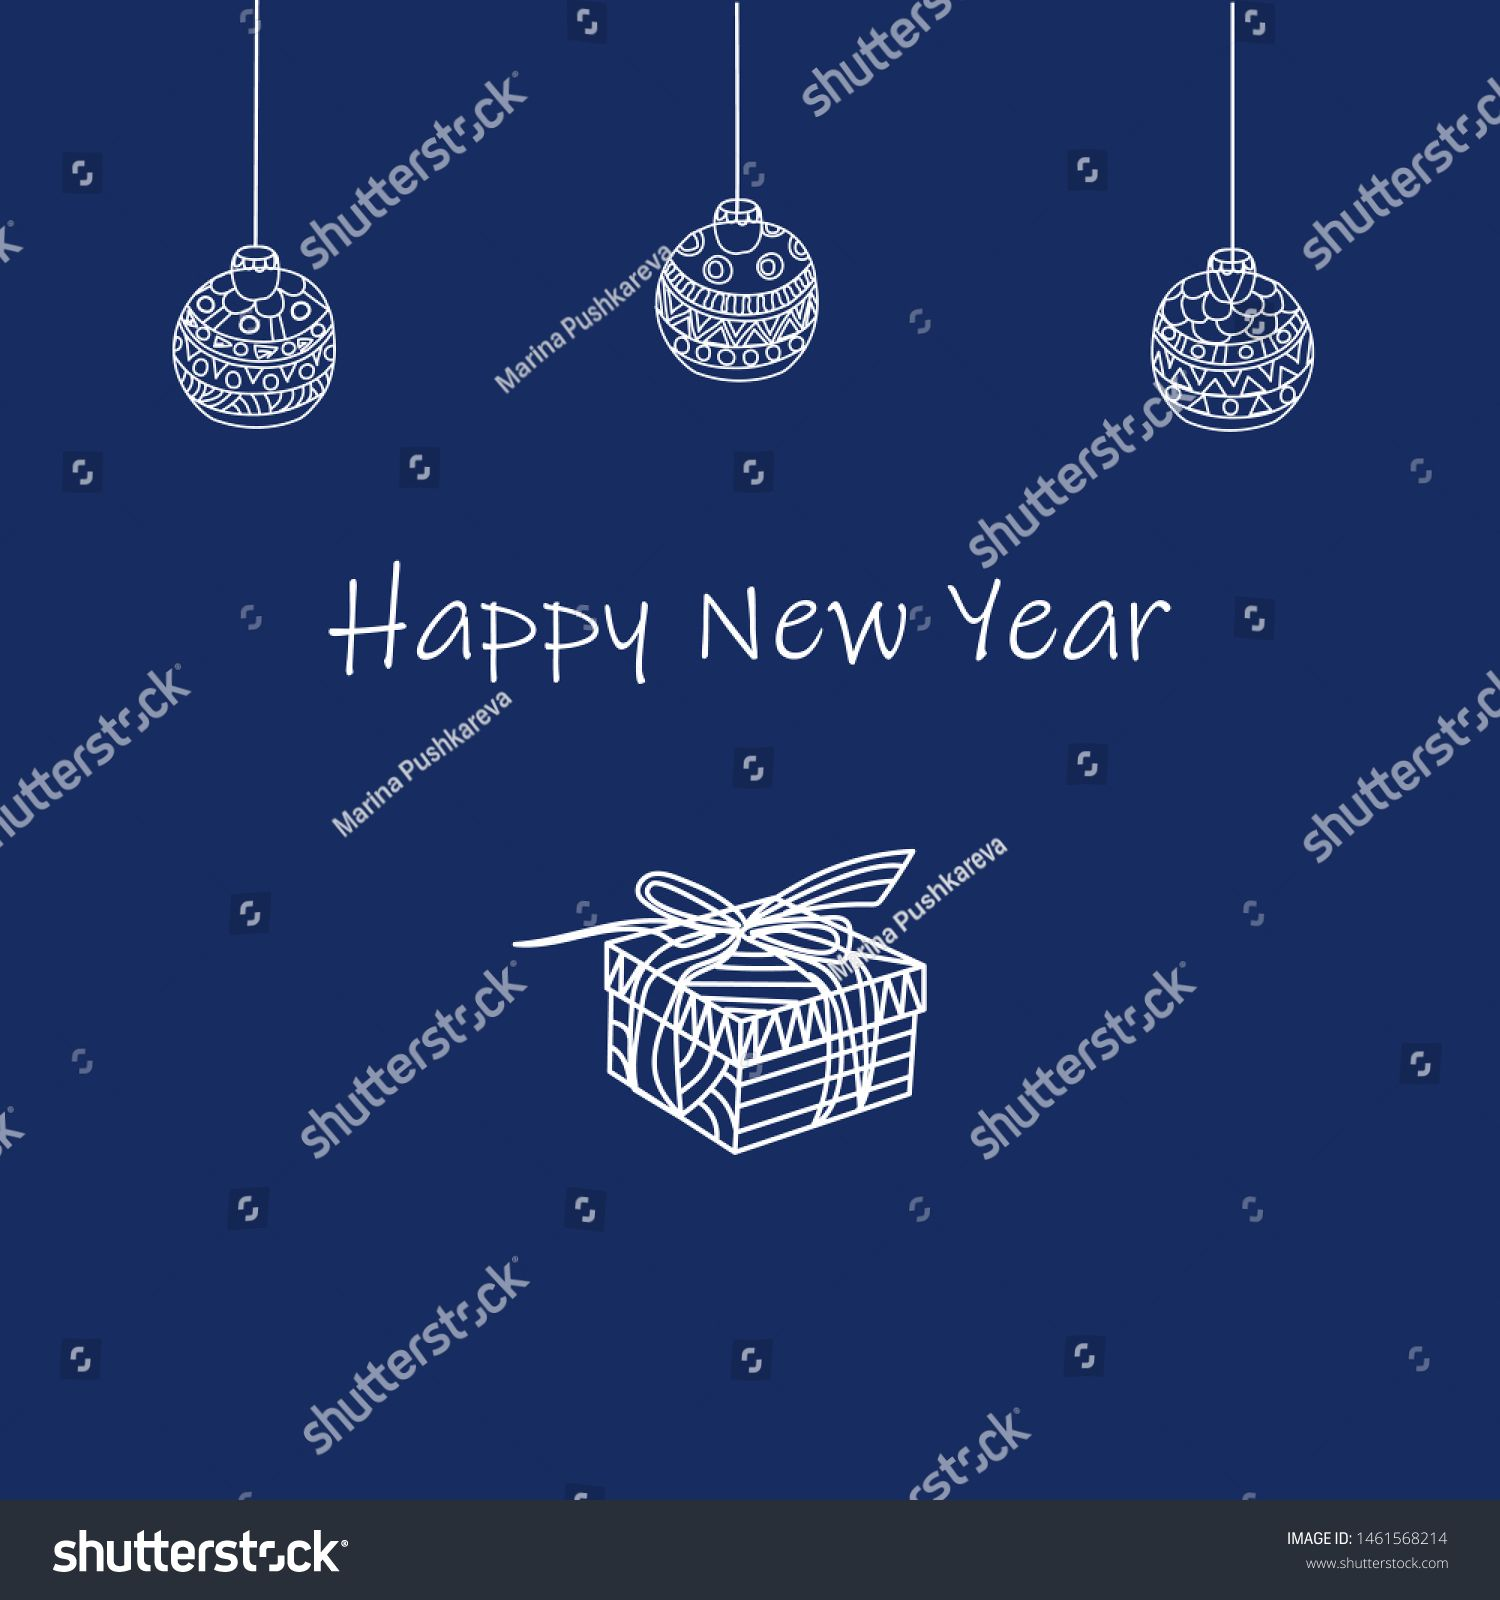 Happy New Year 2020 Greeting Card Template Vector Concept Illustration For Background Greeting Cards Banners For Greeting Card Template Cards Greeting Cards